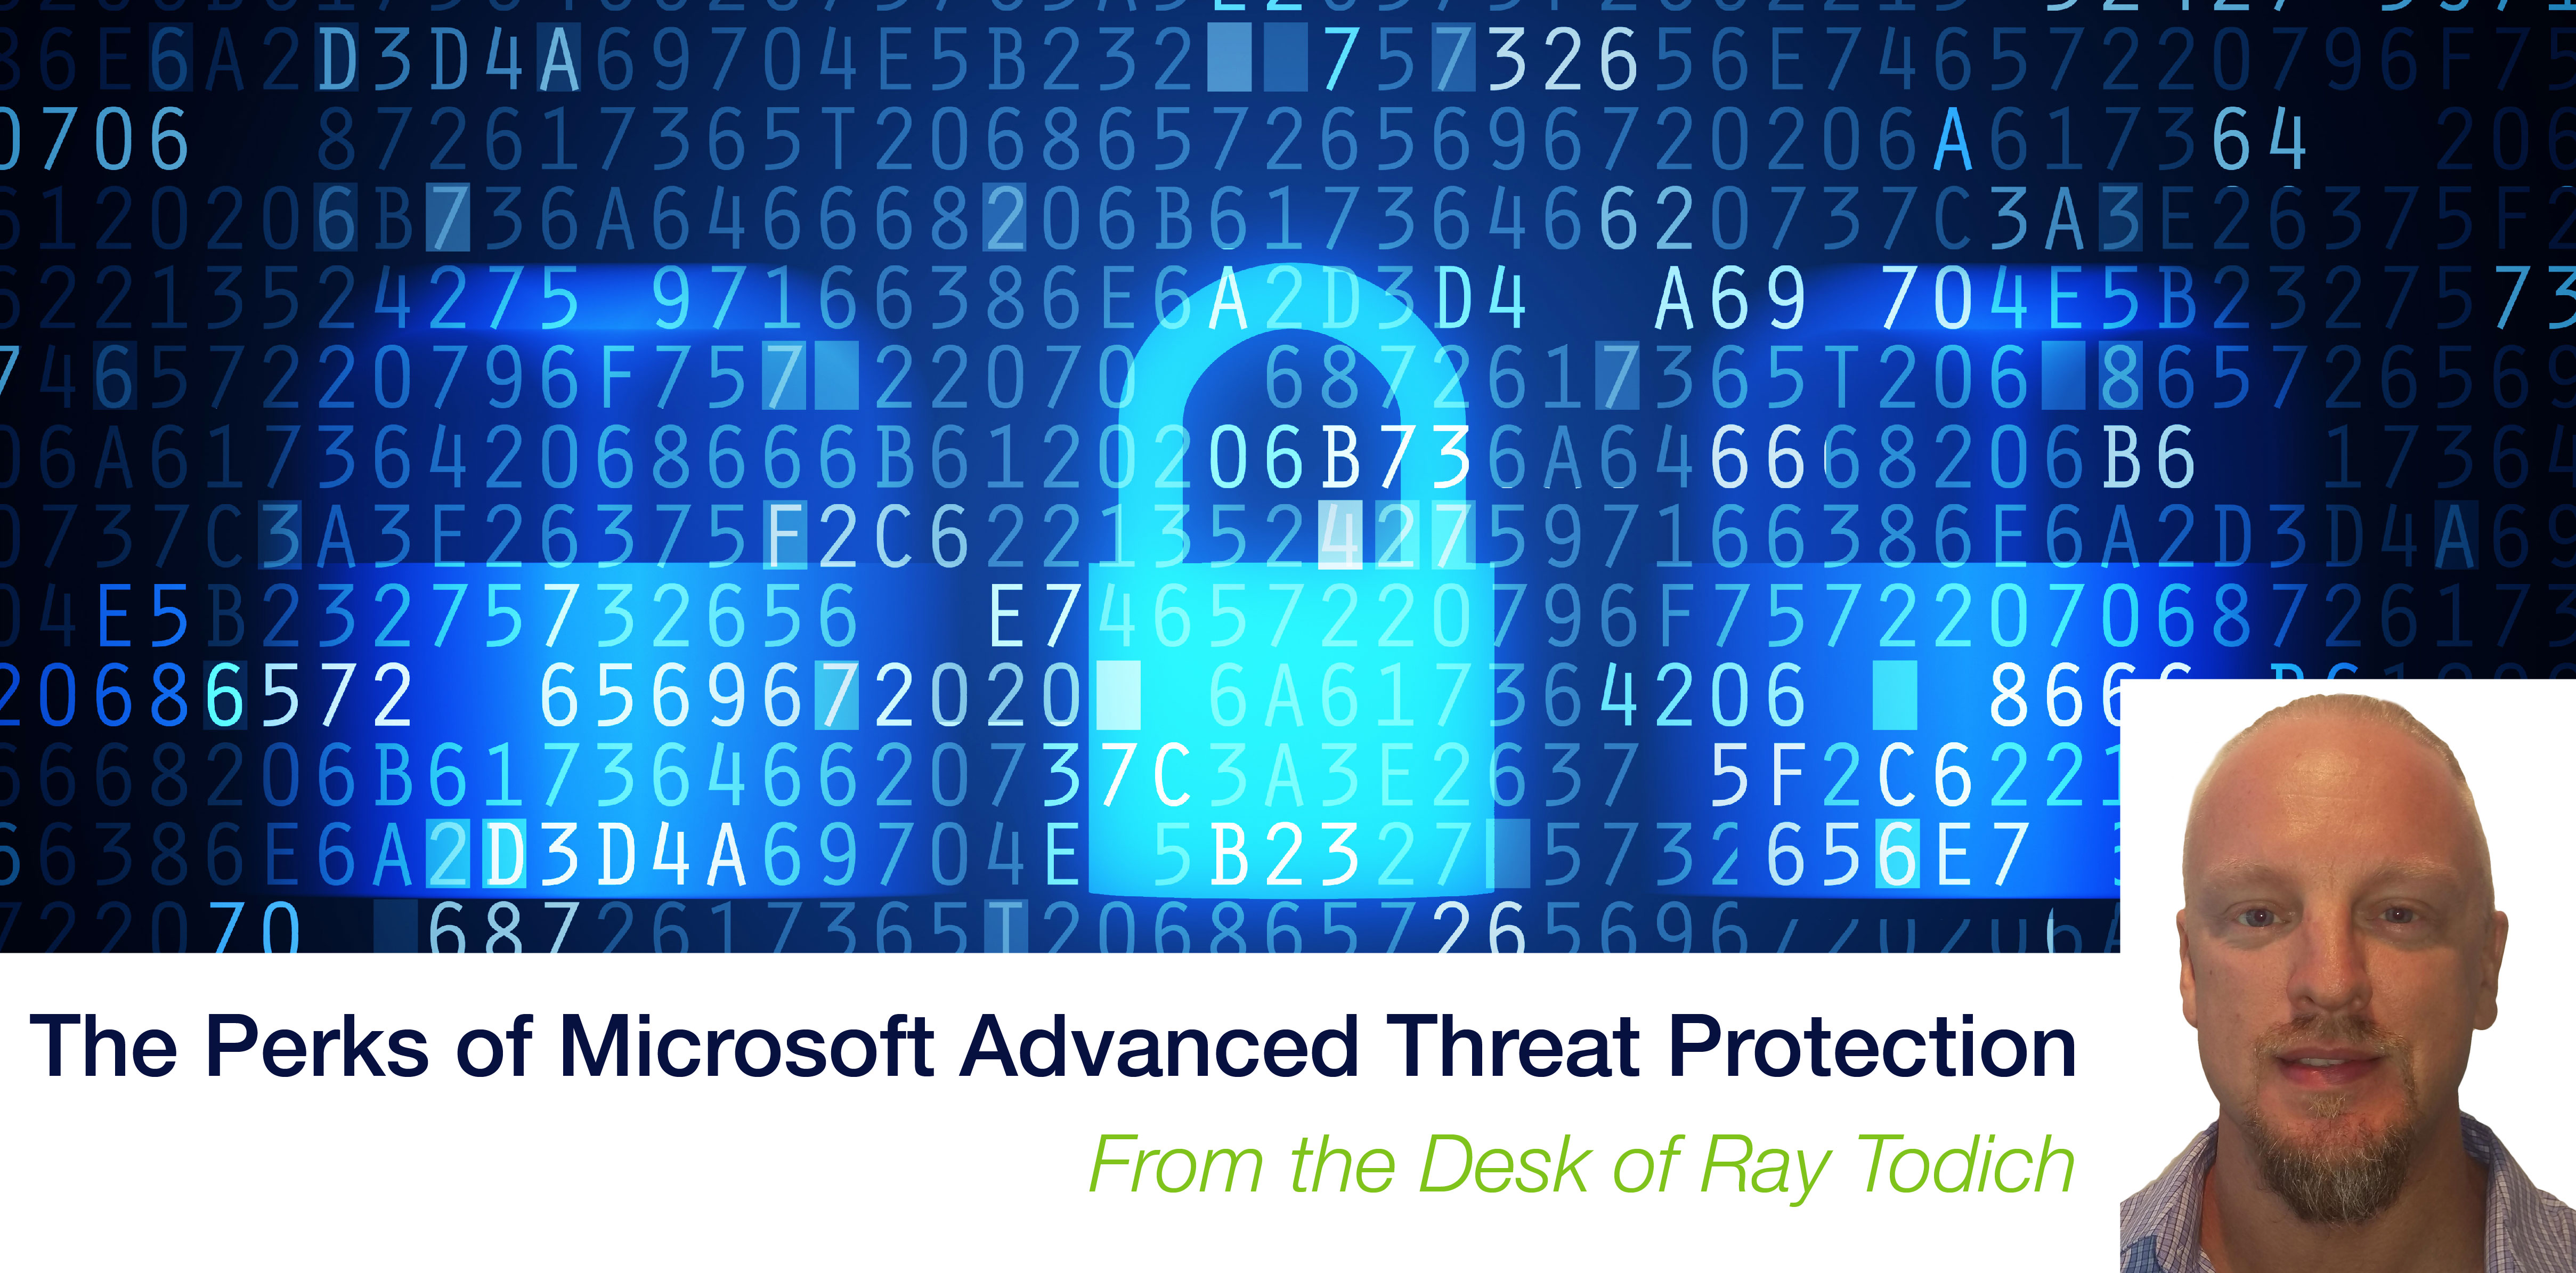 Microsoft Advanced Threat Protection